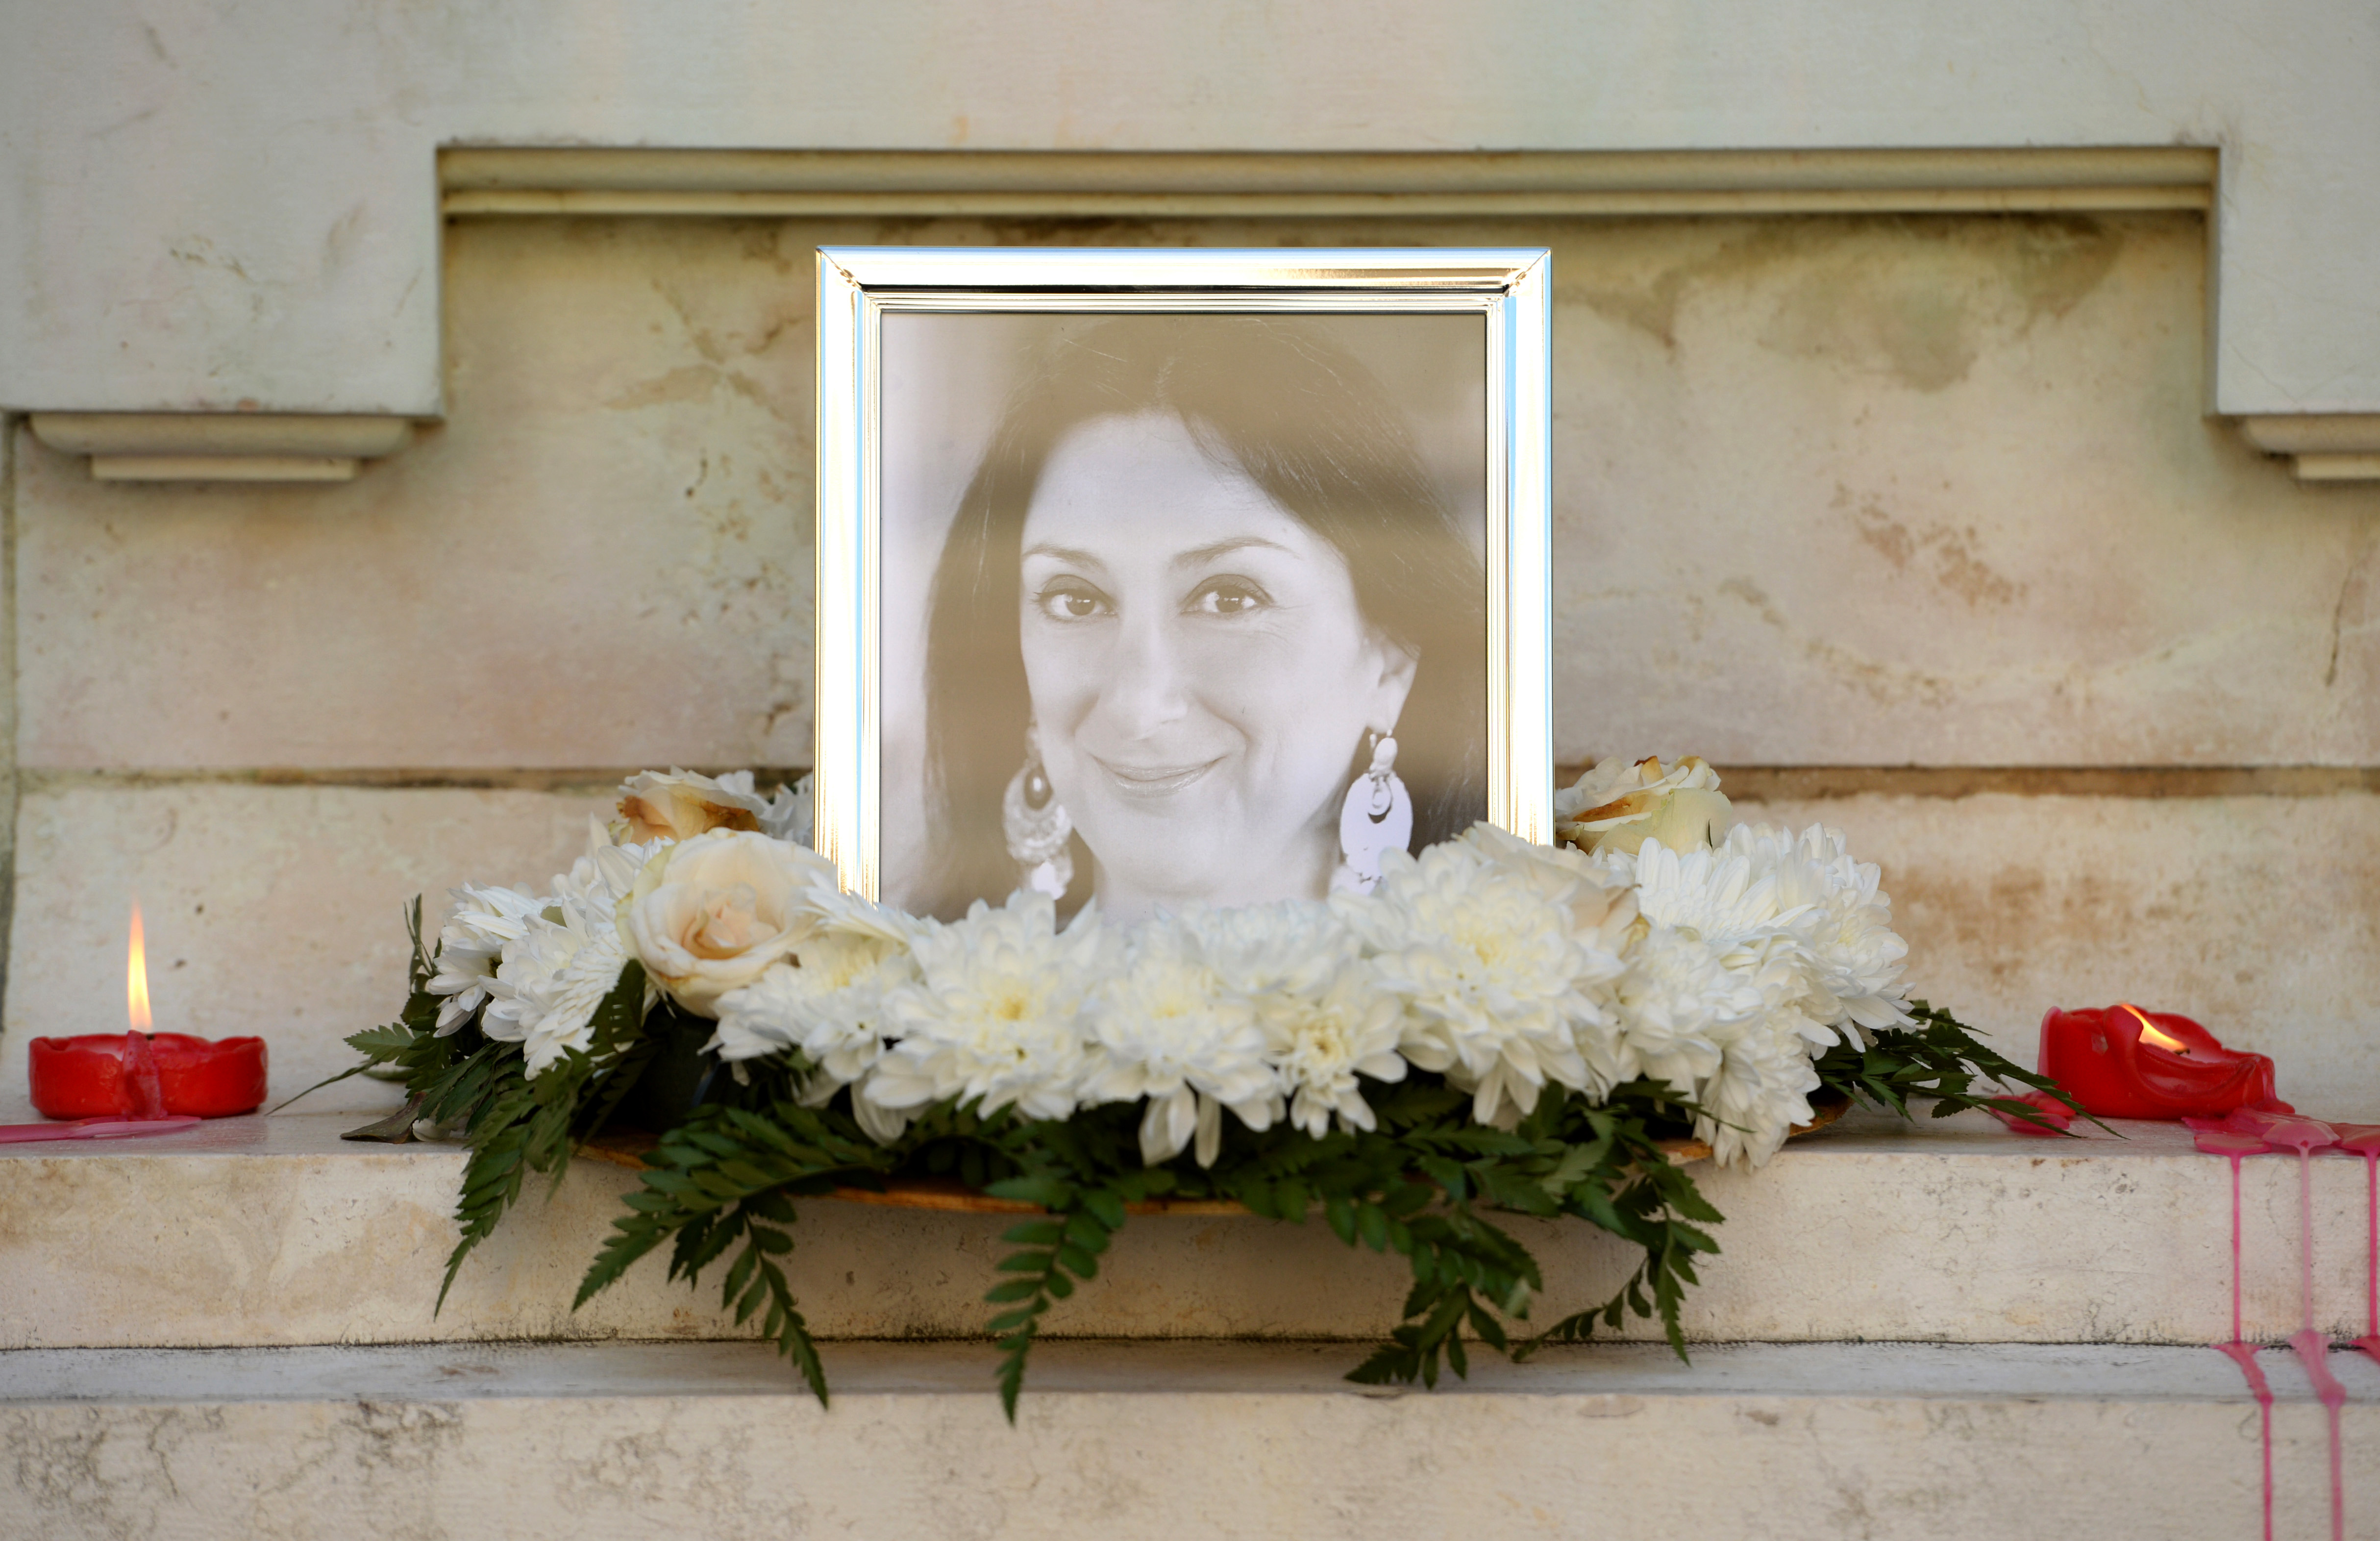 The family of Daphne Caruana Galizia, a Maltese journalist who was killed in 2017, have called on Malta's Prime Minister Joseph Muscat to resign immediately.